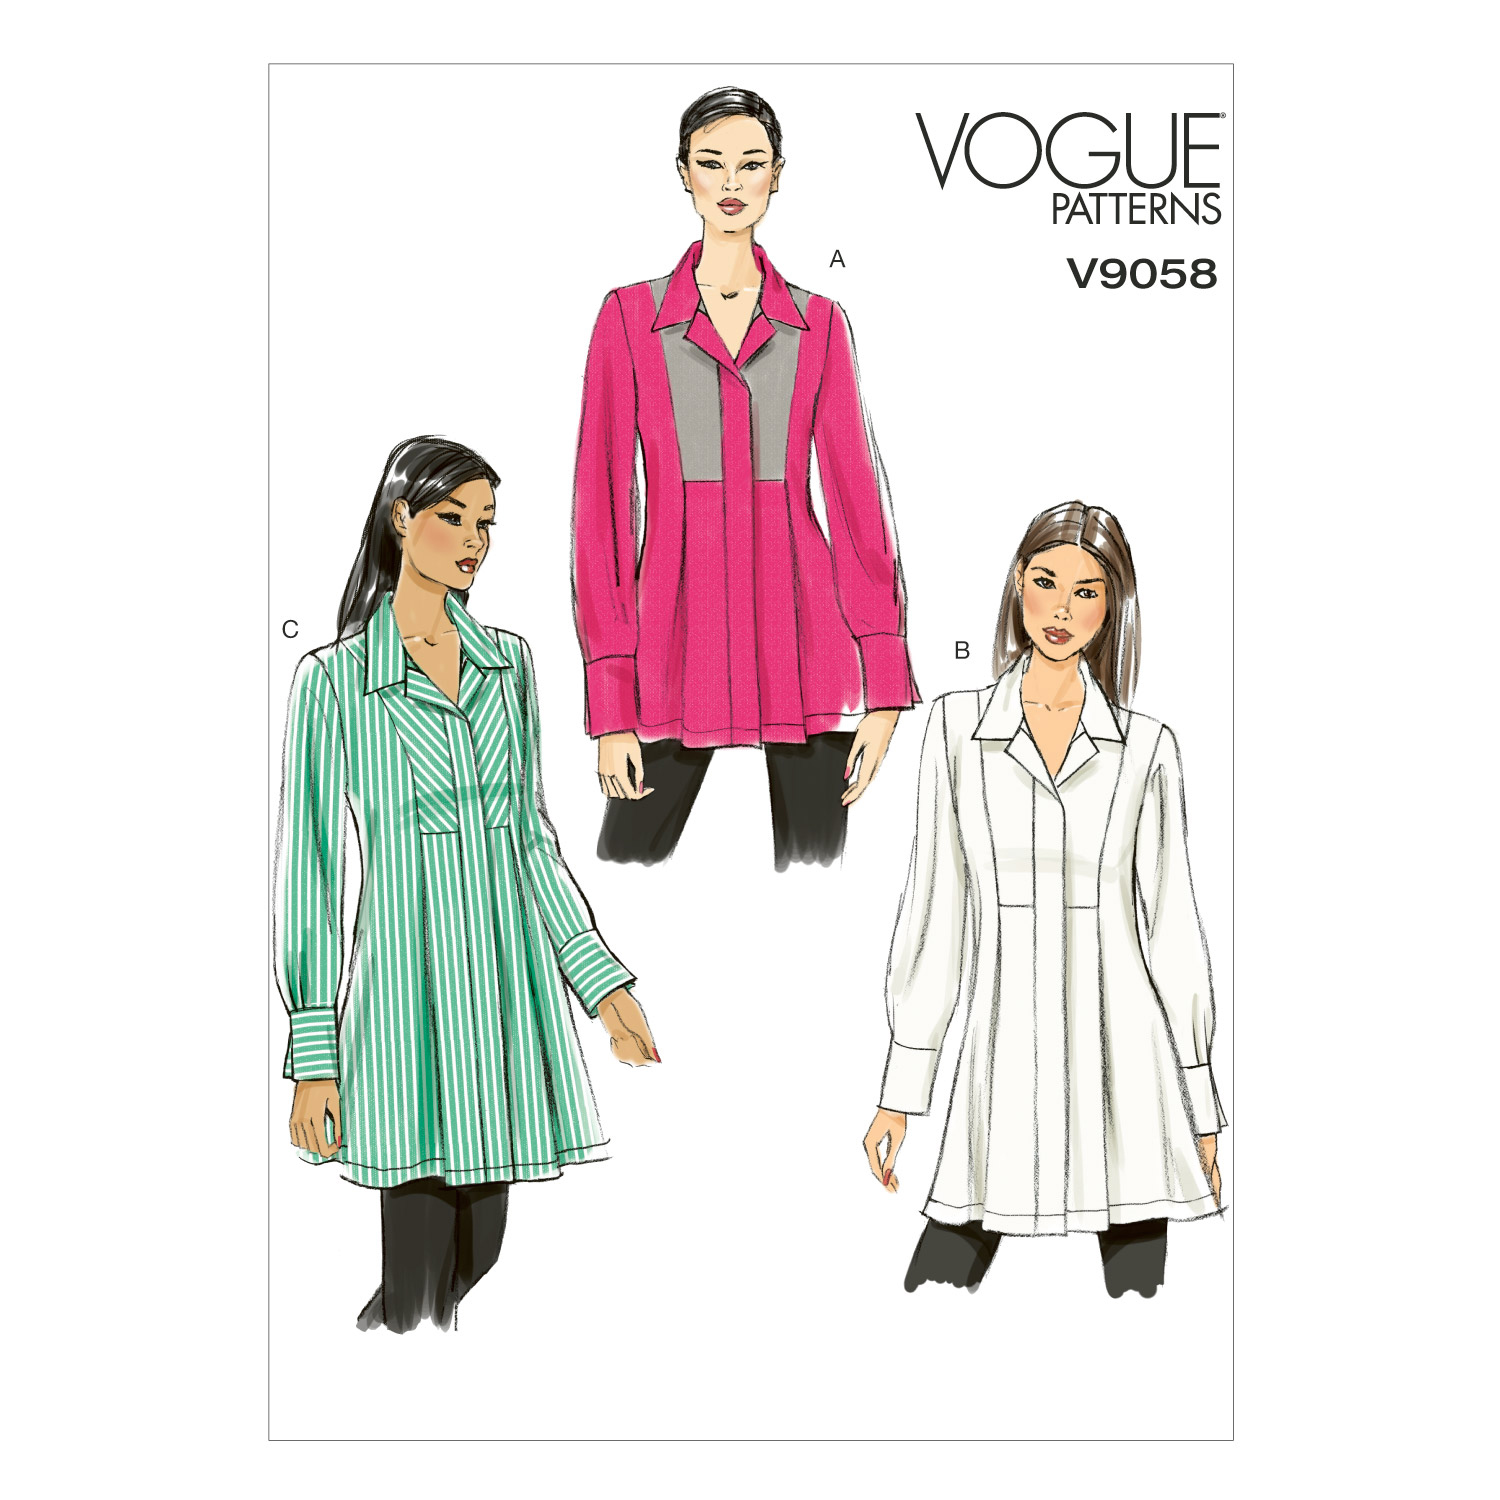 Vogue Patterns Misses Top-V9058